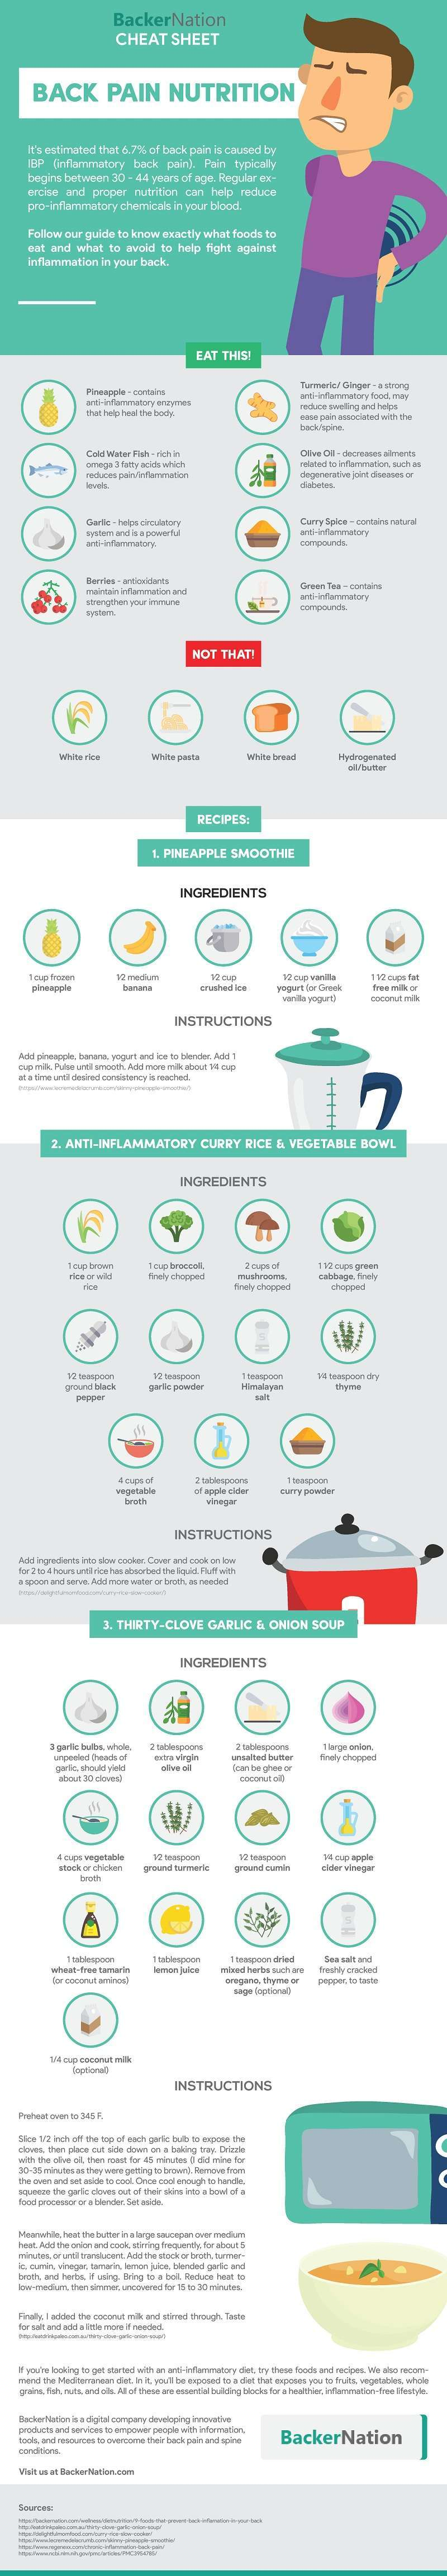 This infographic displays what your diet should look like to reduce inflammation.